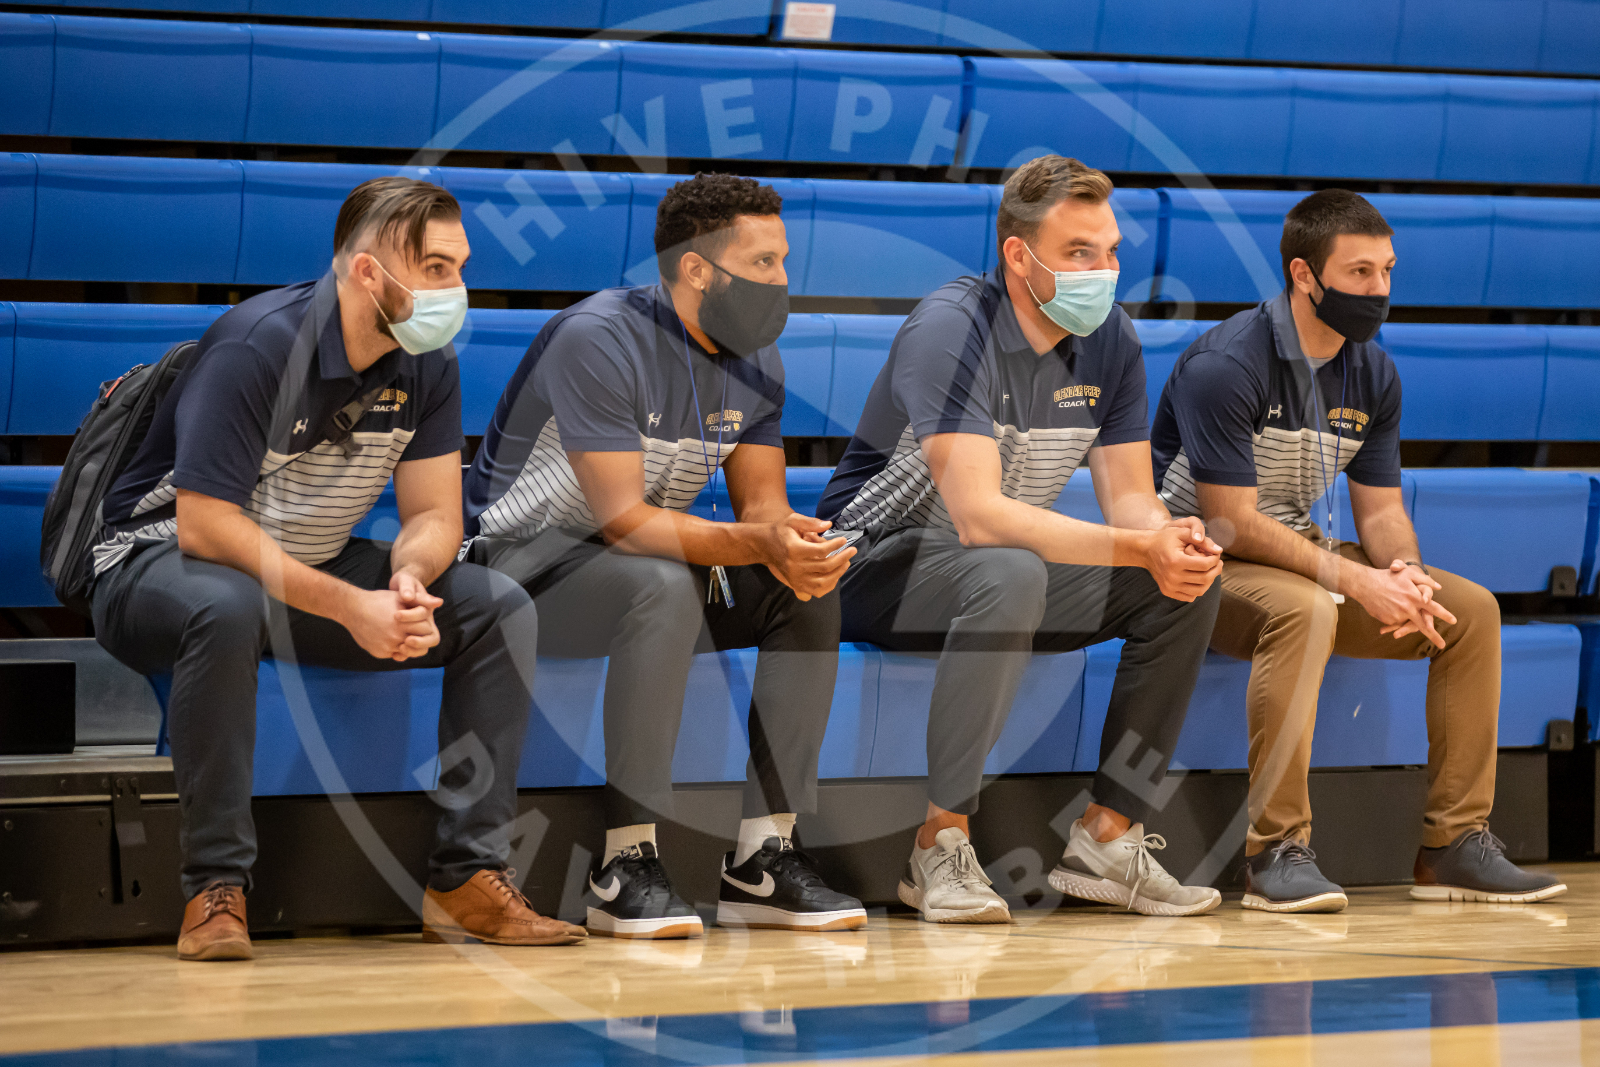 coaches watch game